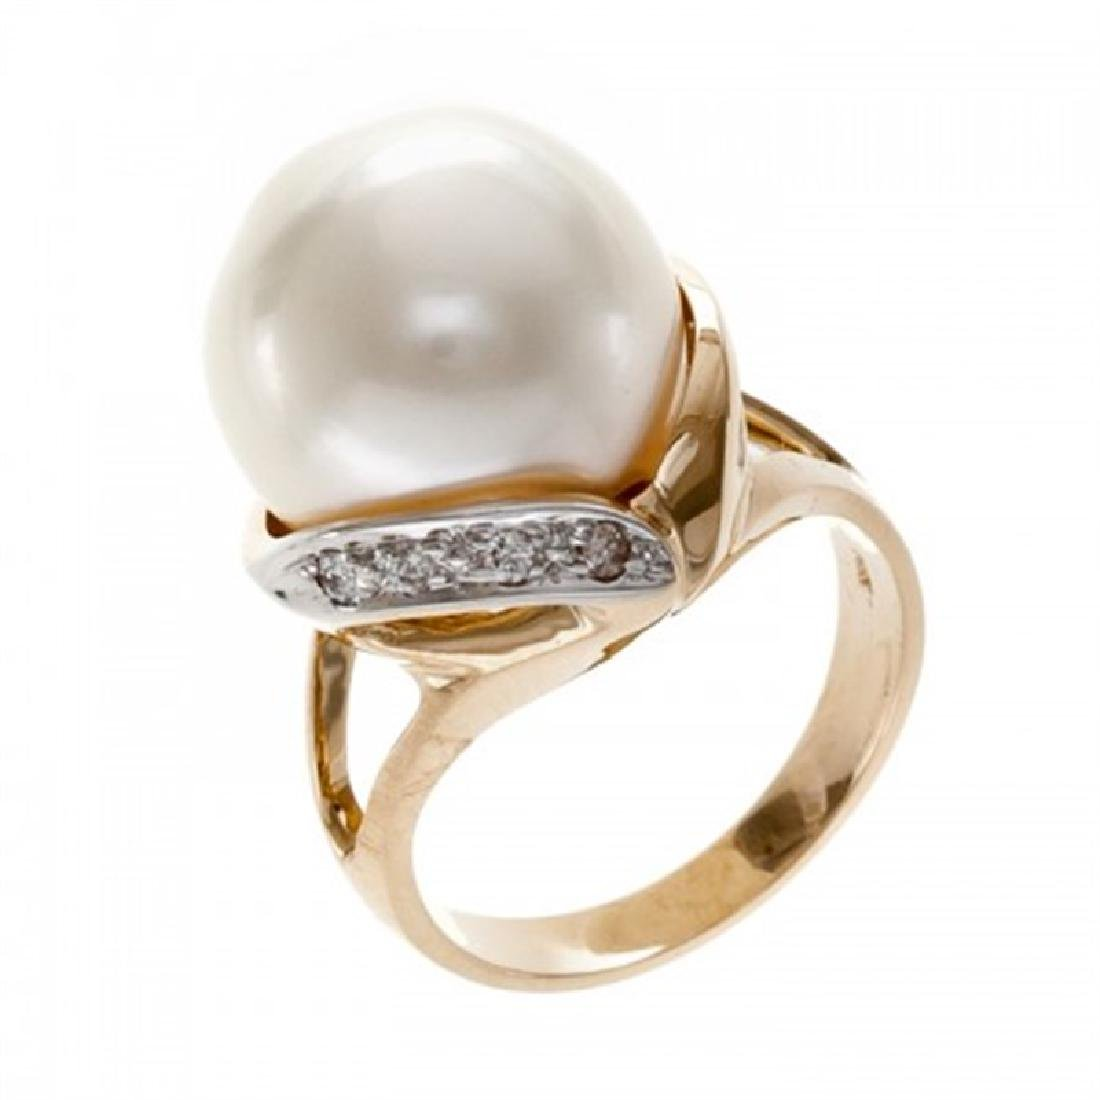 13.5-14.0mm South Sea Pearl Ring with Diamonds